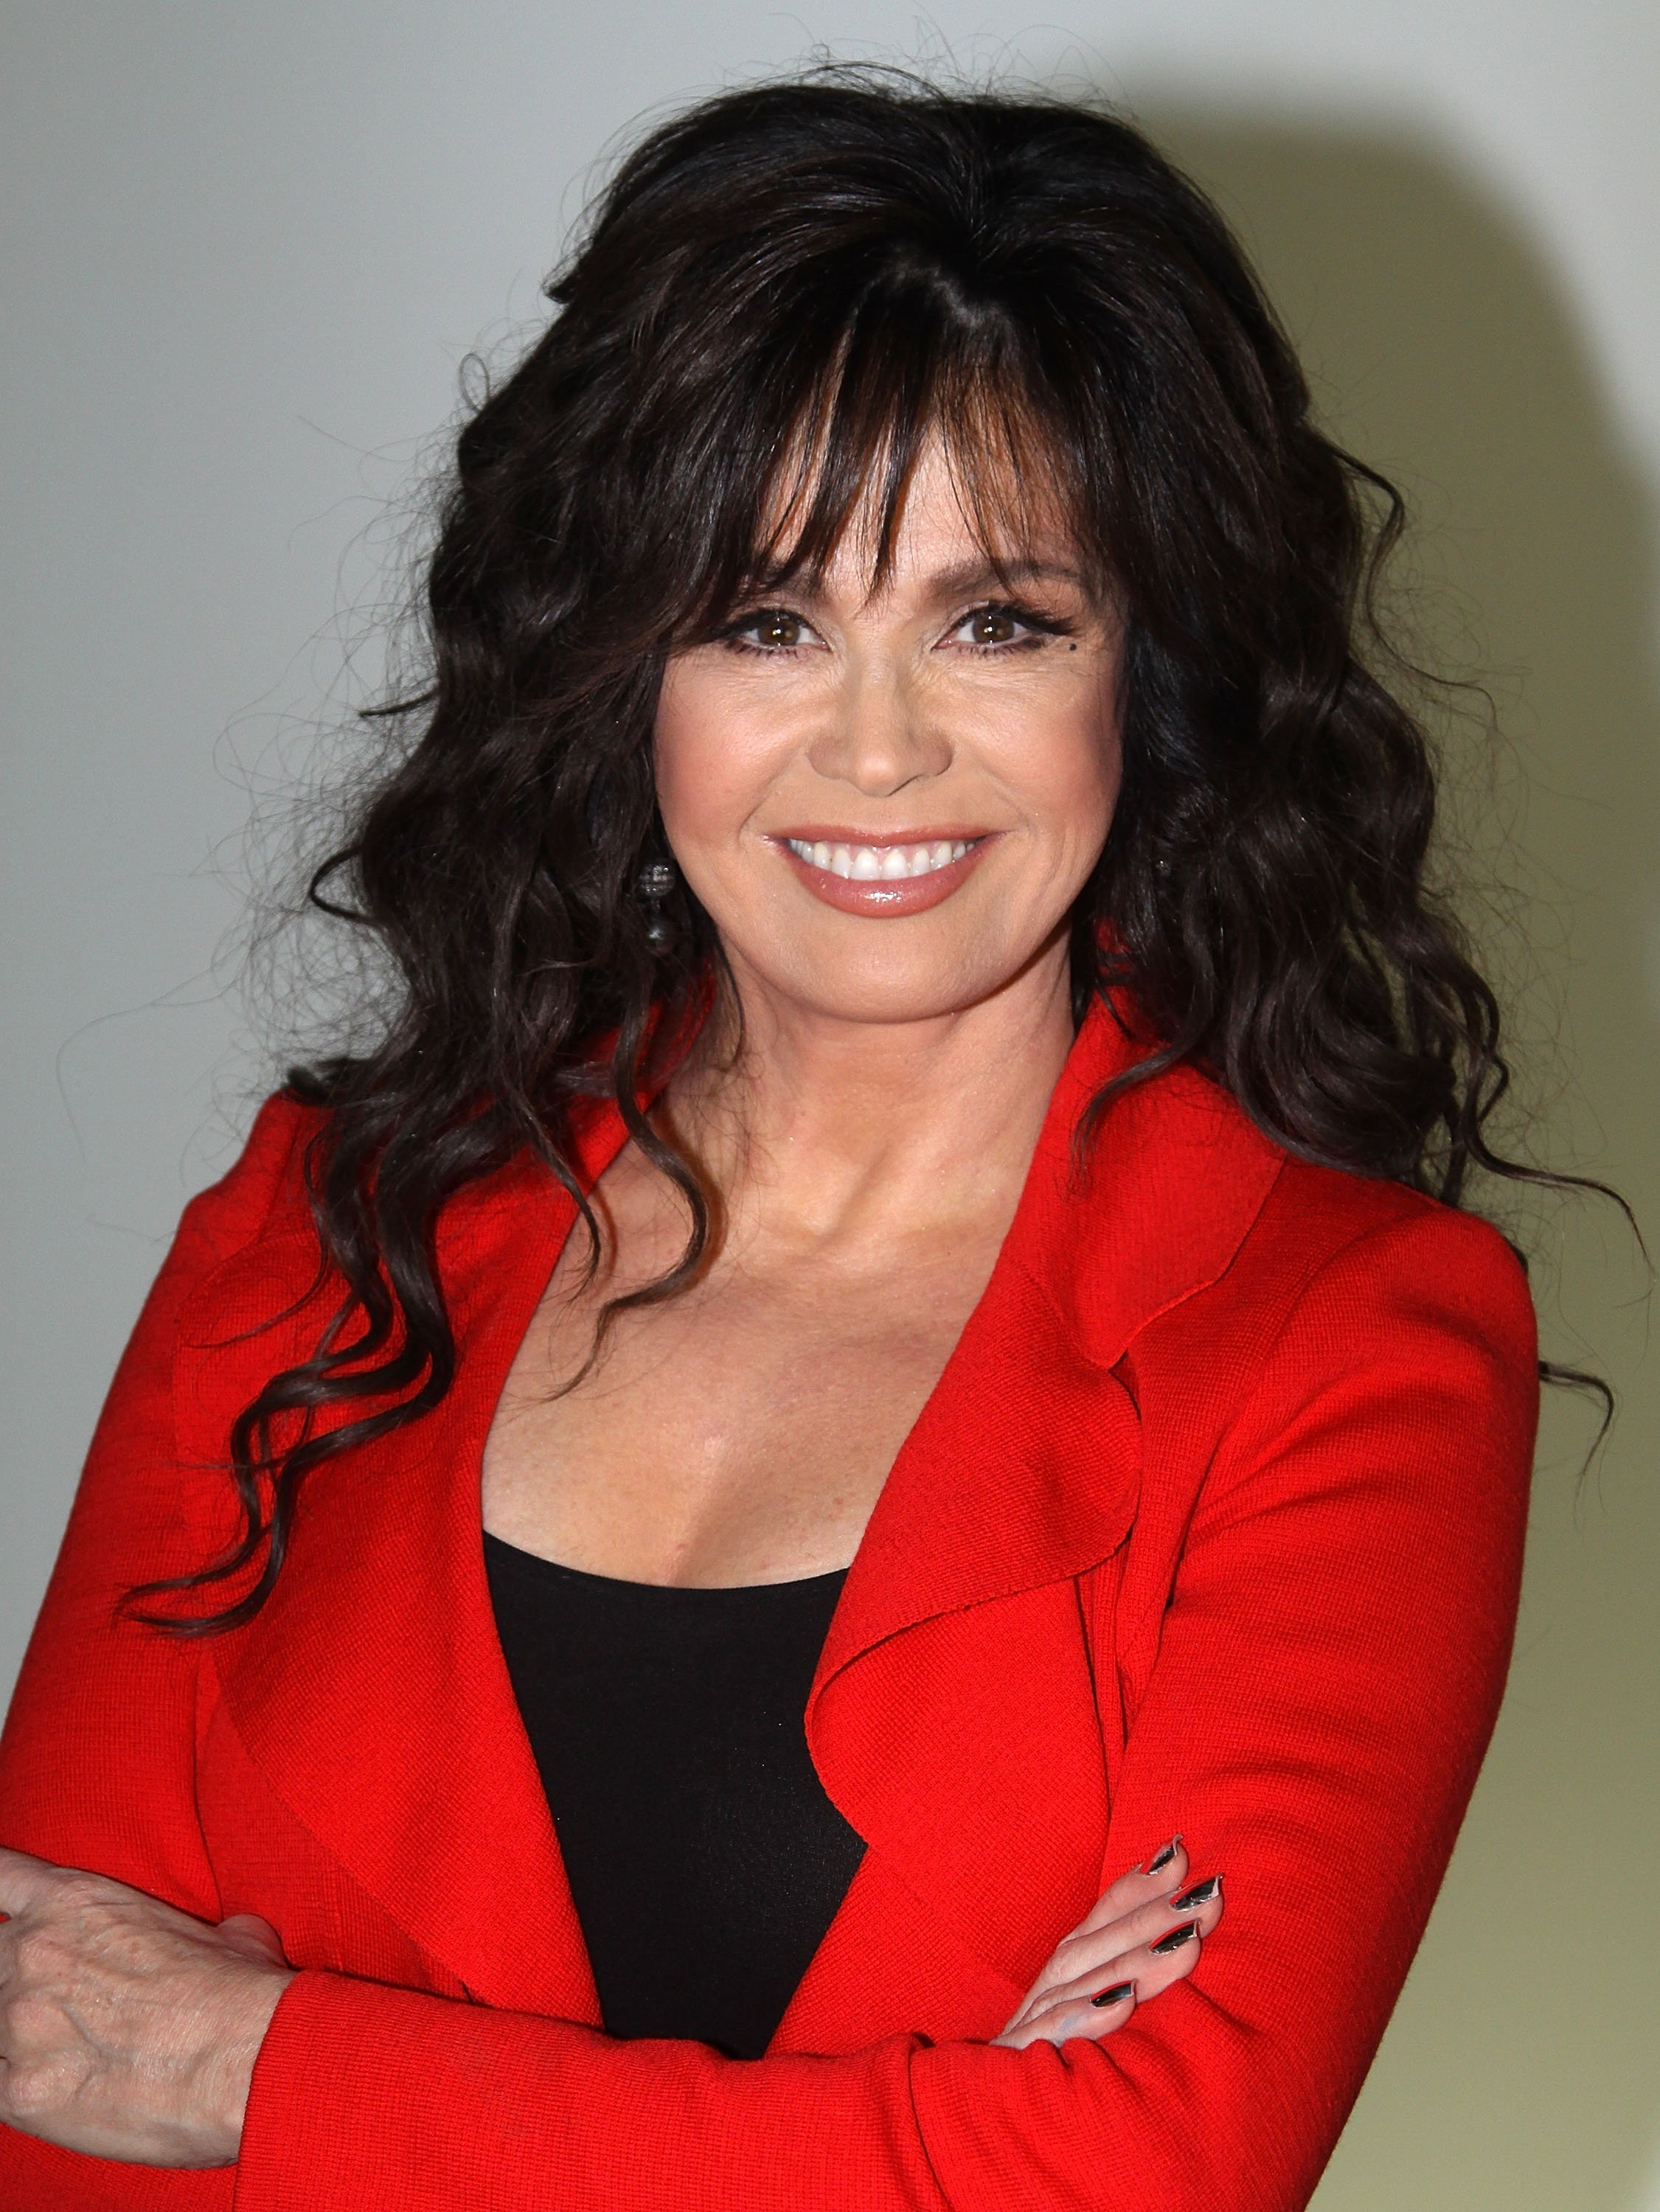 Marie Osmond on December 8, 2010 in New York City | Source: Getty Images